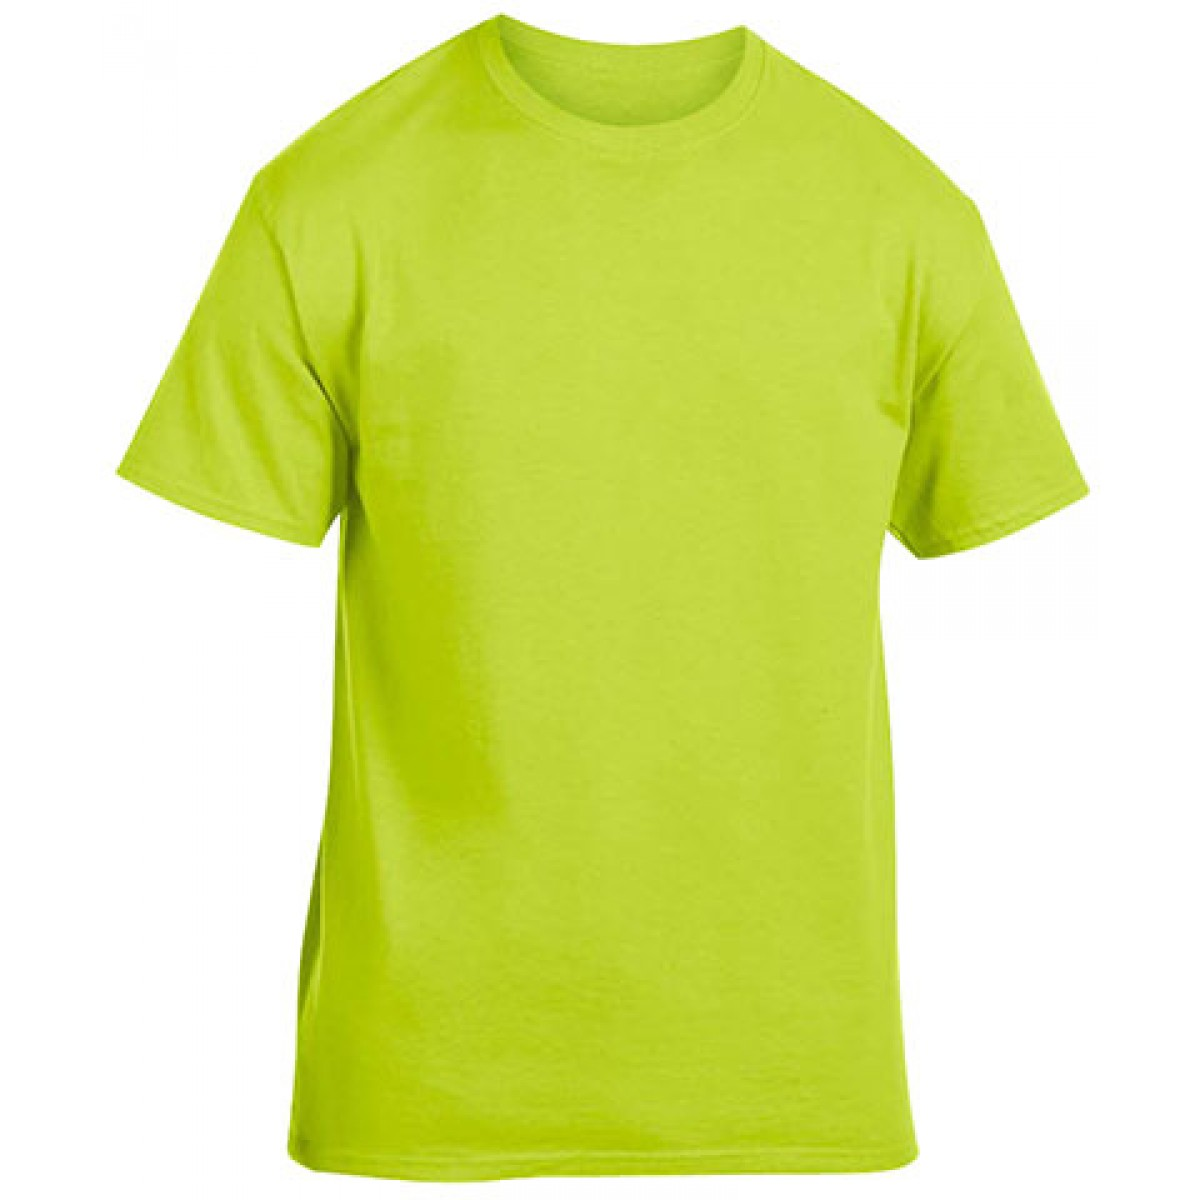 Heavy Cotton Activewear T-Shirt-Safety Green-XL